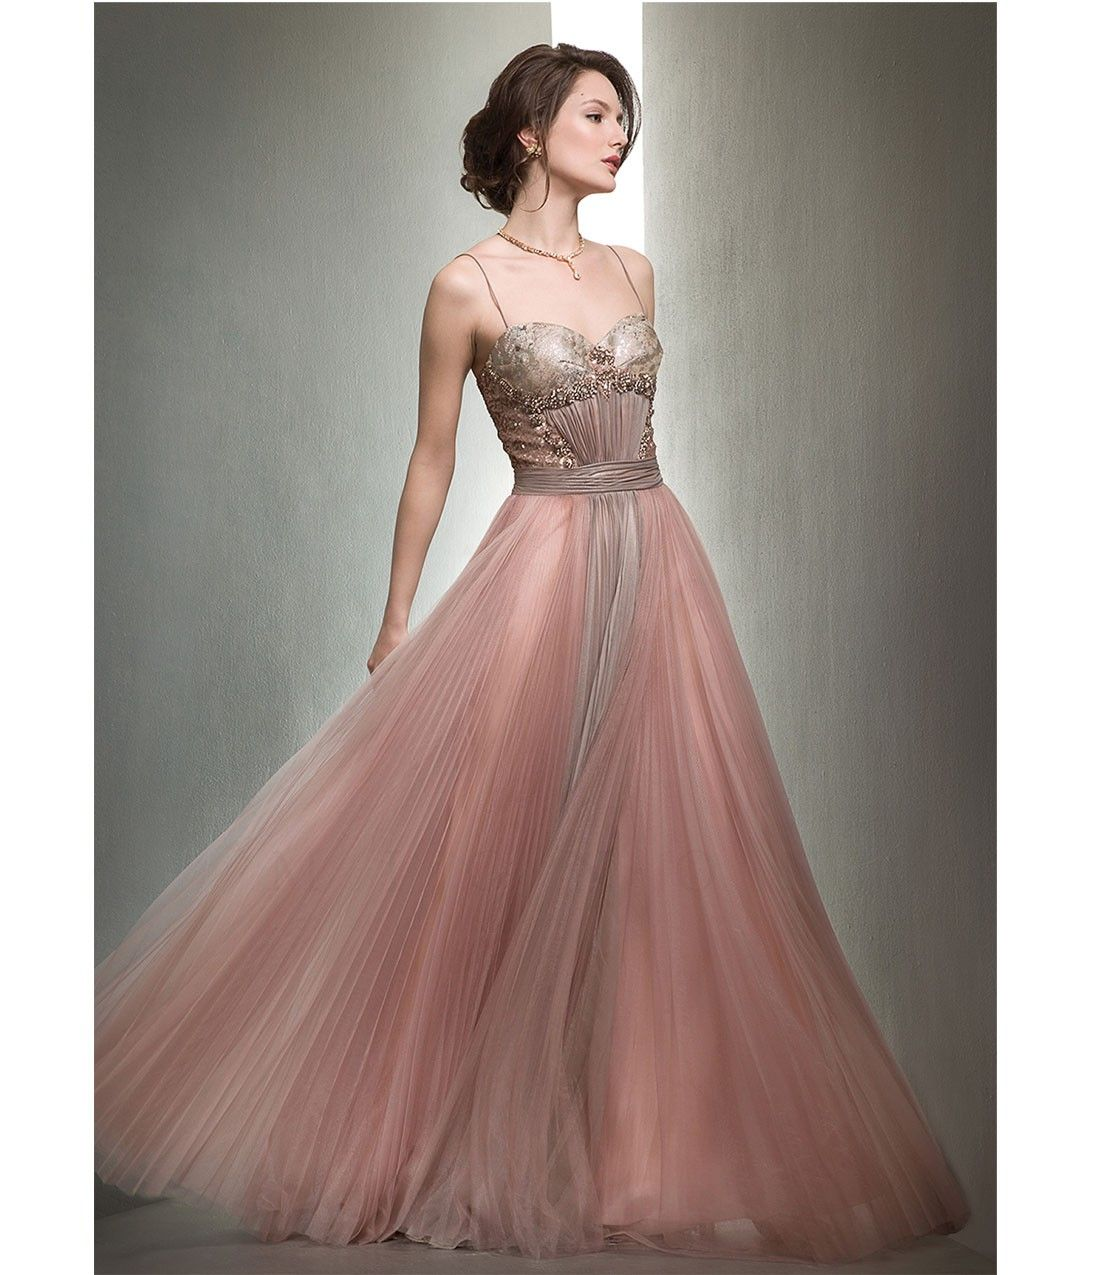 Mignon VM1158 Quartz Pleated Chiffon Evening Gown :: Prom ...